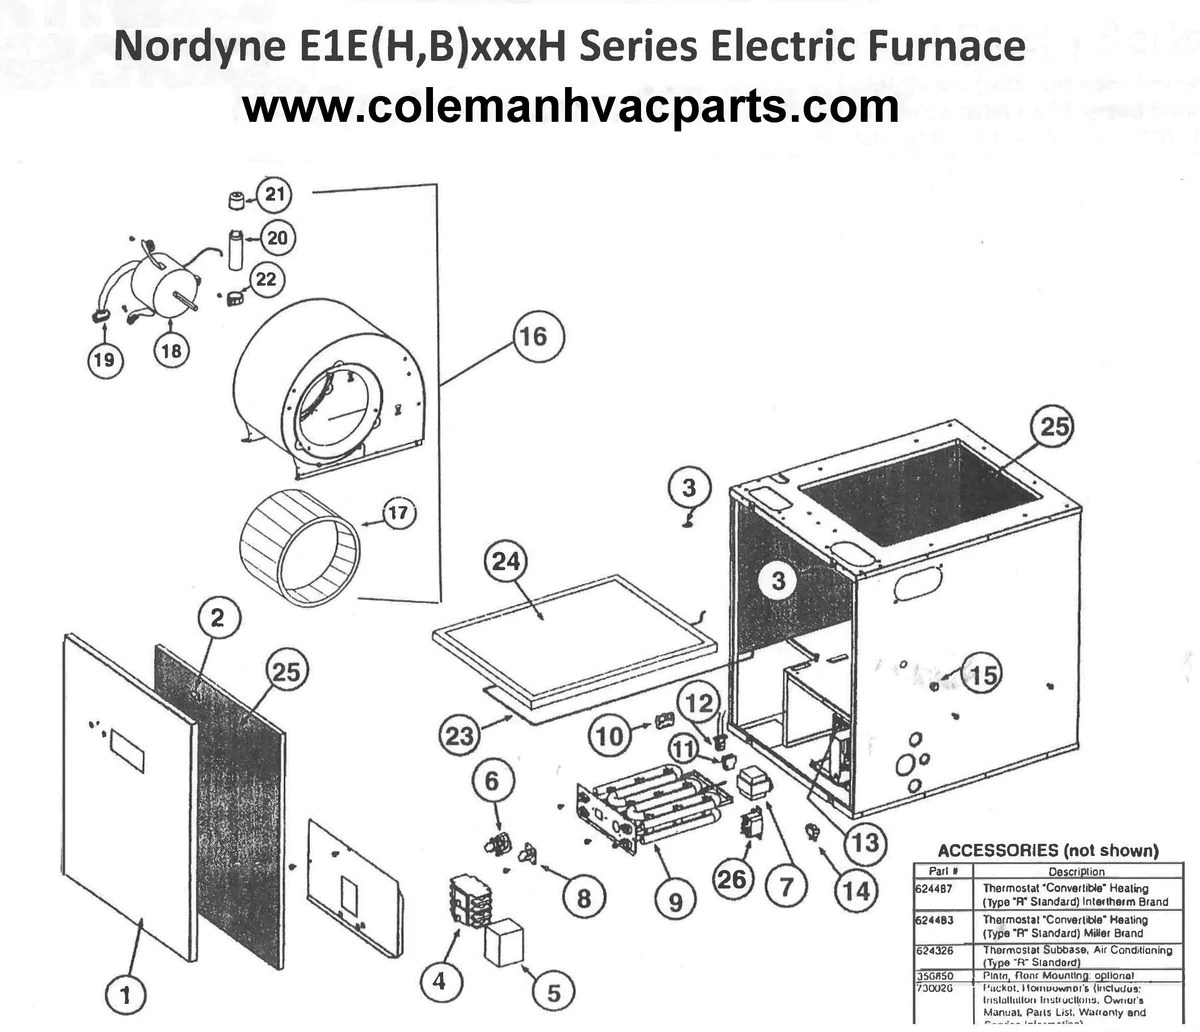 hight resolution of e1eh015h nordyne electric furnace parts u2013 hvacpartstoremiller central air conditioner wiring diagram 17